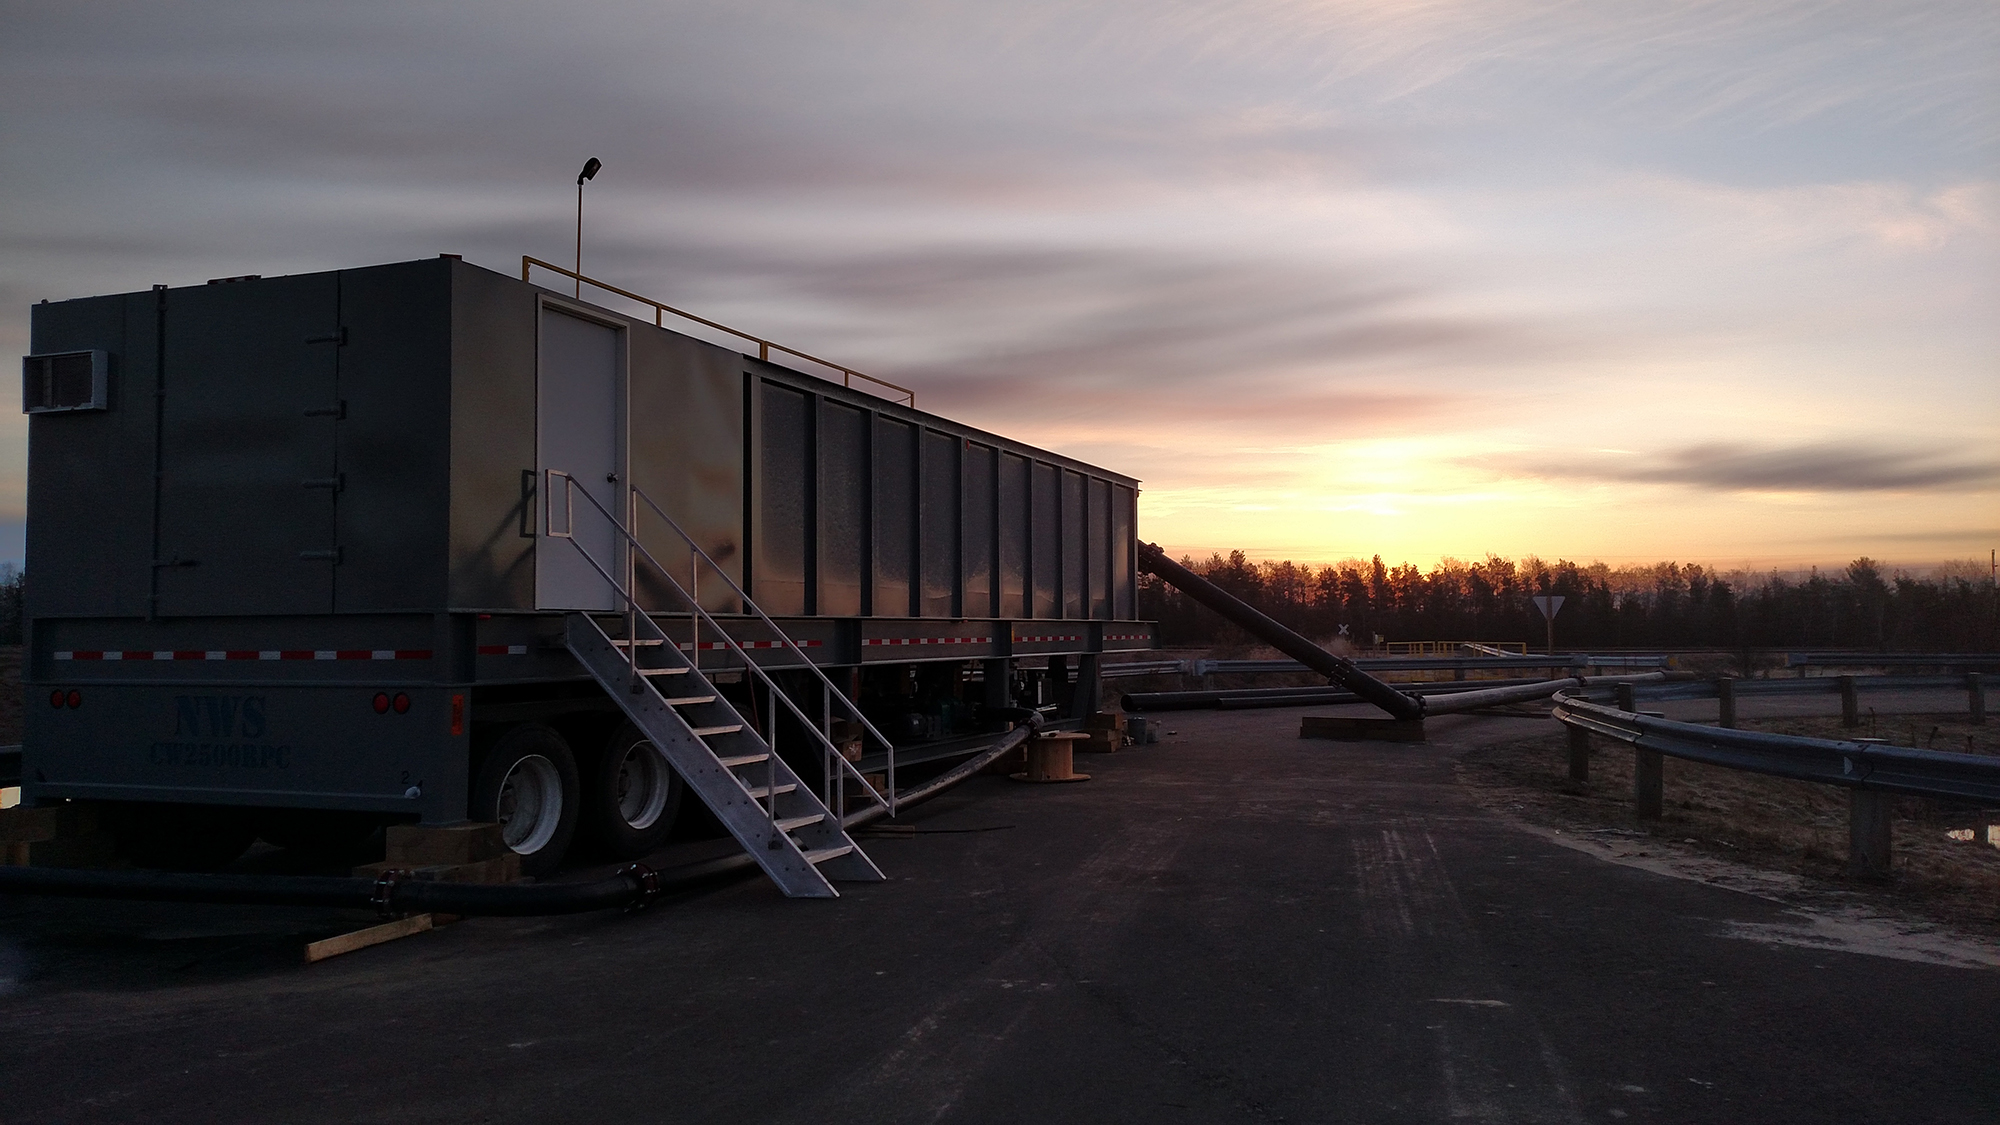 A portable water clarifier with stairs going up to a white door on the back of the clarifier and a sunset in the background.